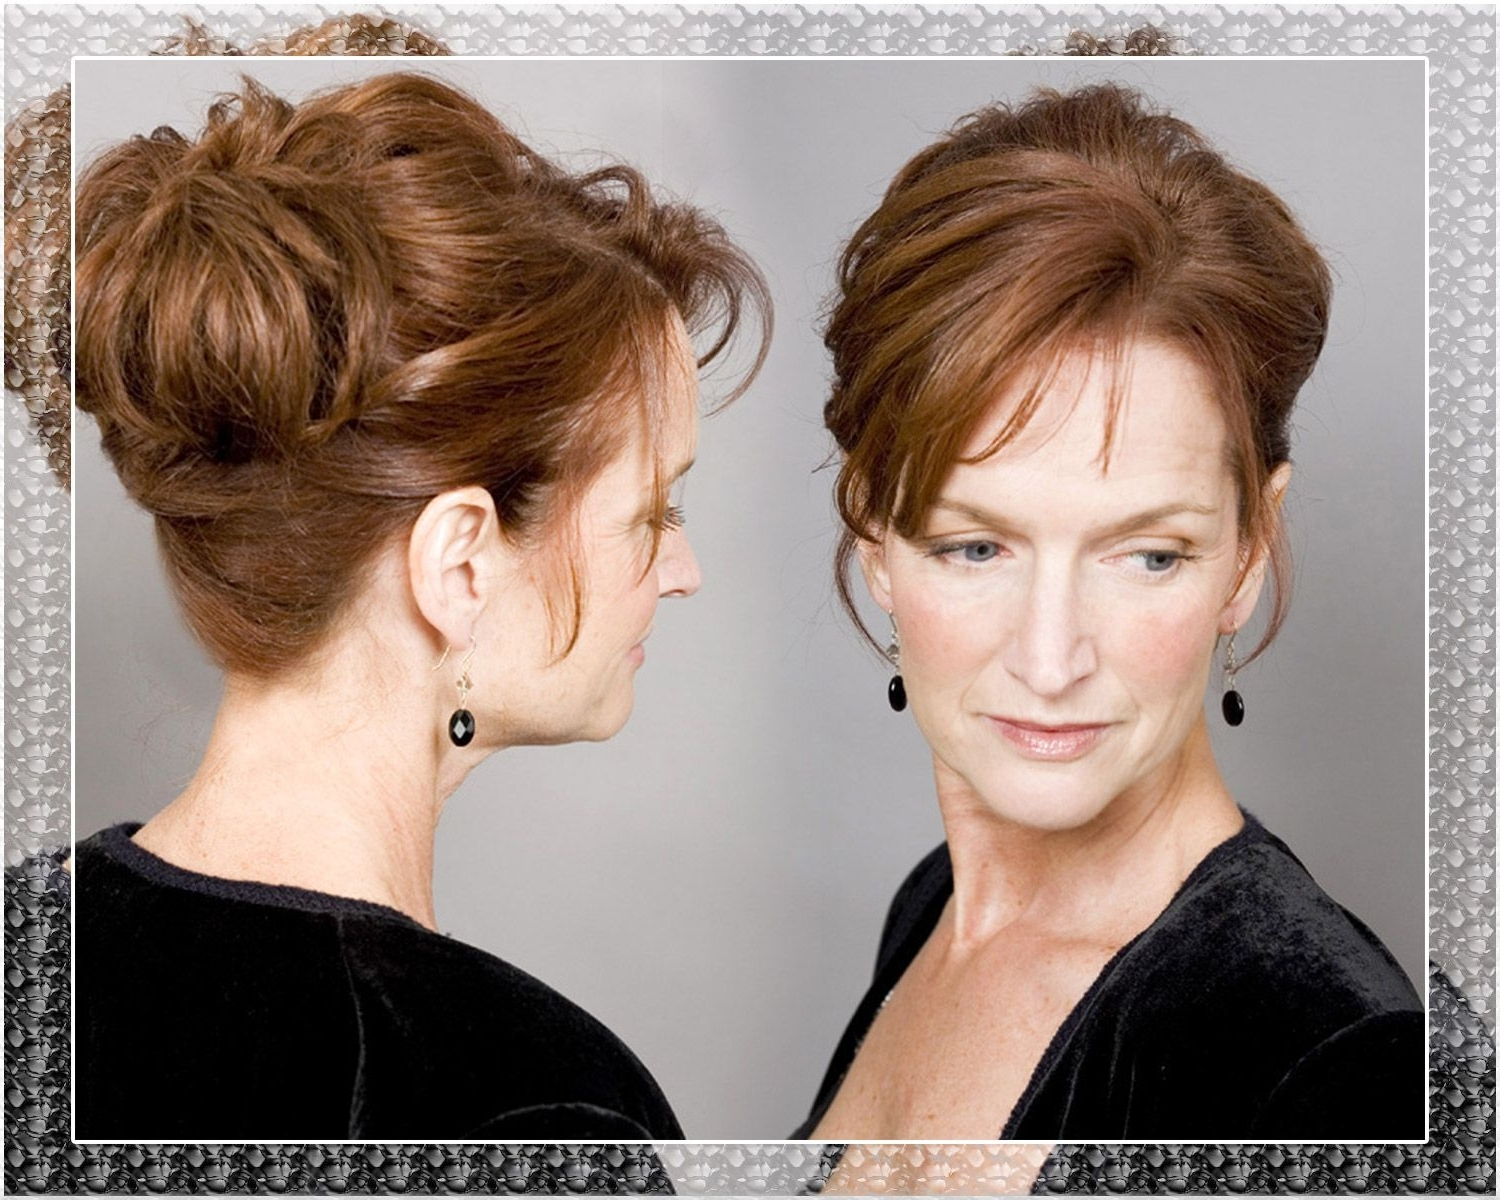 Hairstyles For Weddings (View 4 of 15)